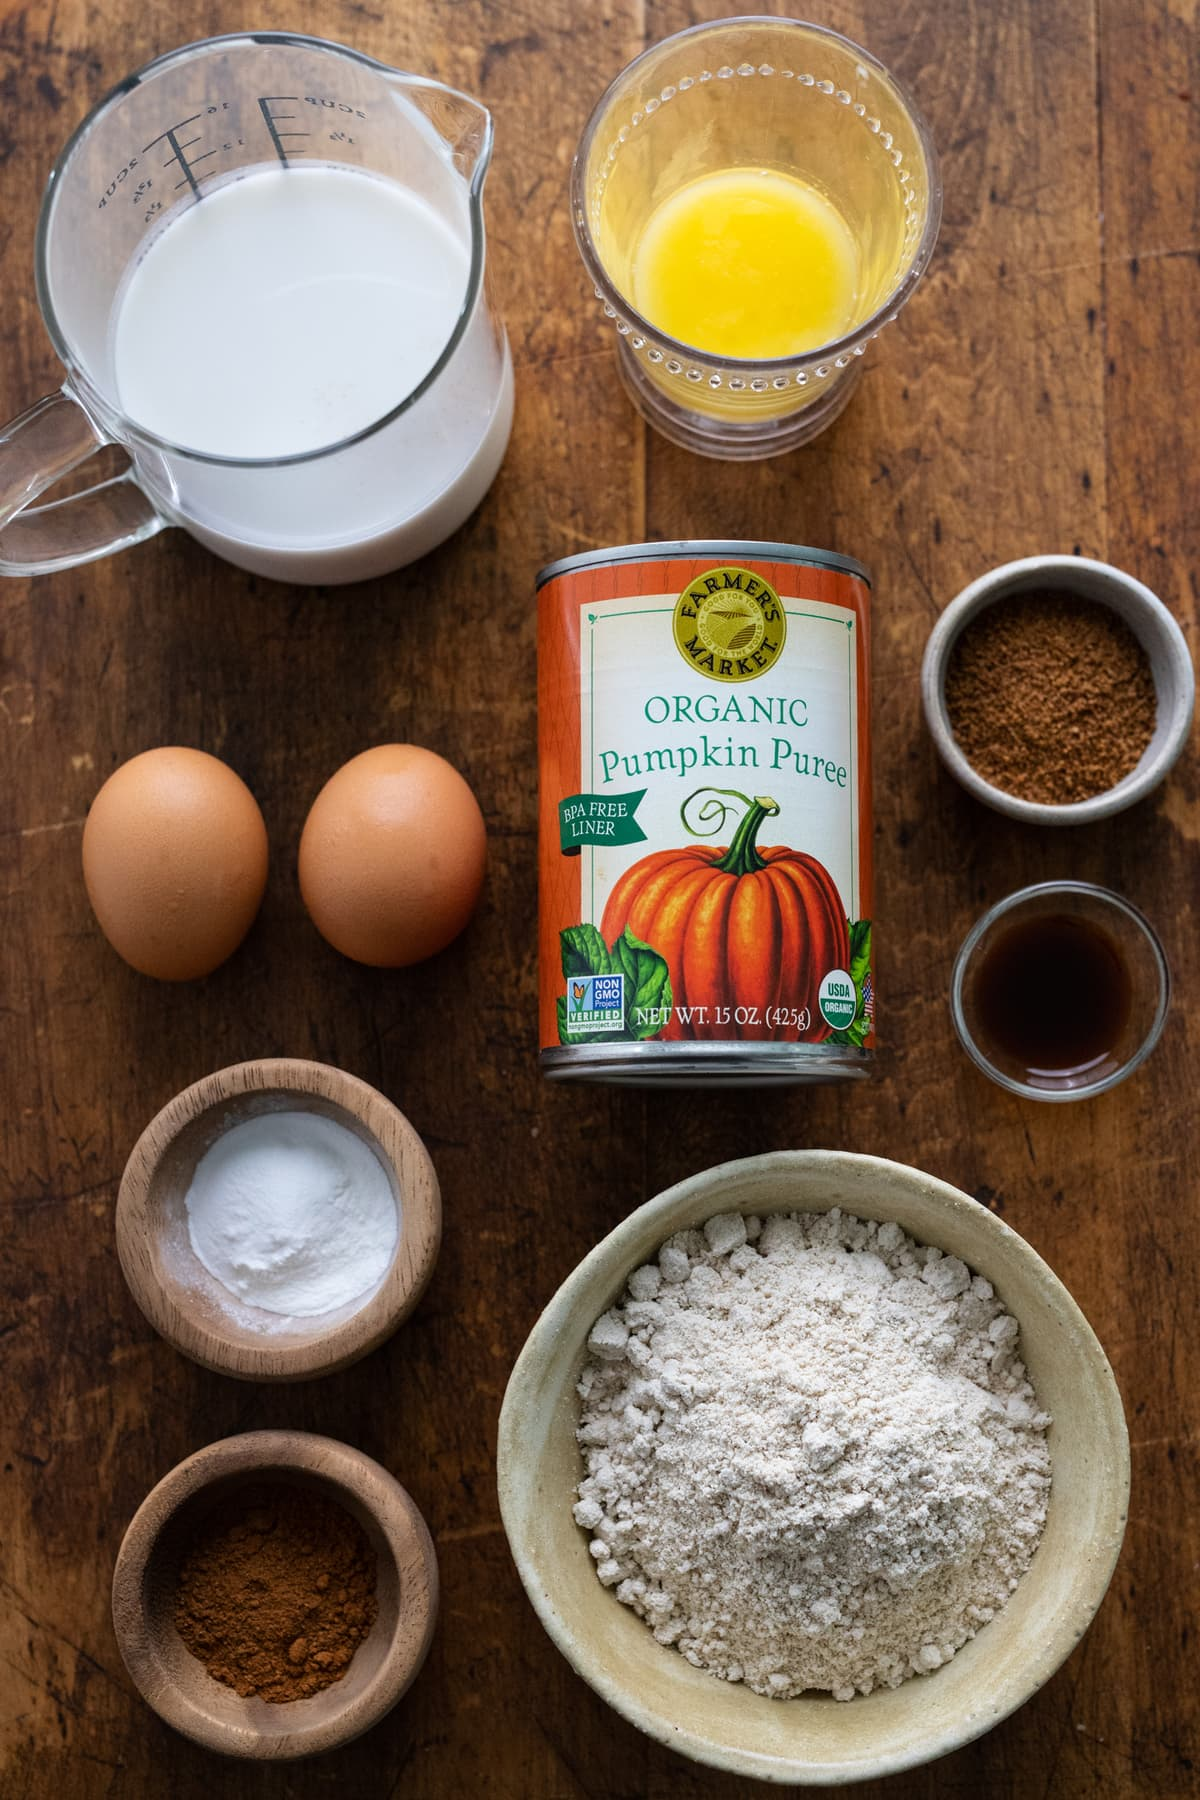 Ingredients for healthy pumpkin spice pancakes arranged on a wooden background.